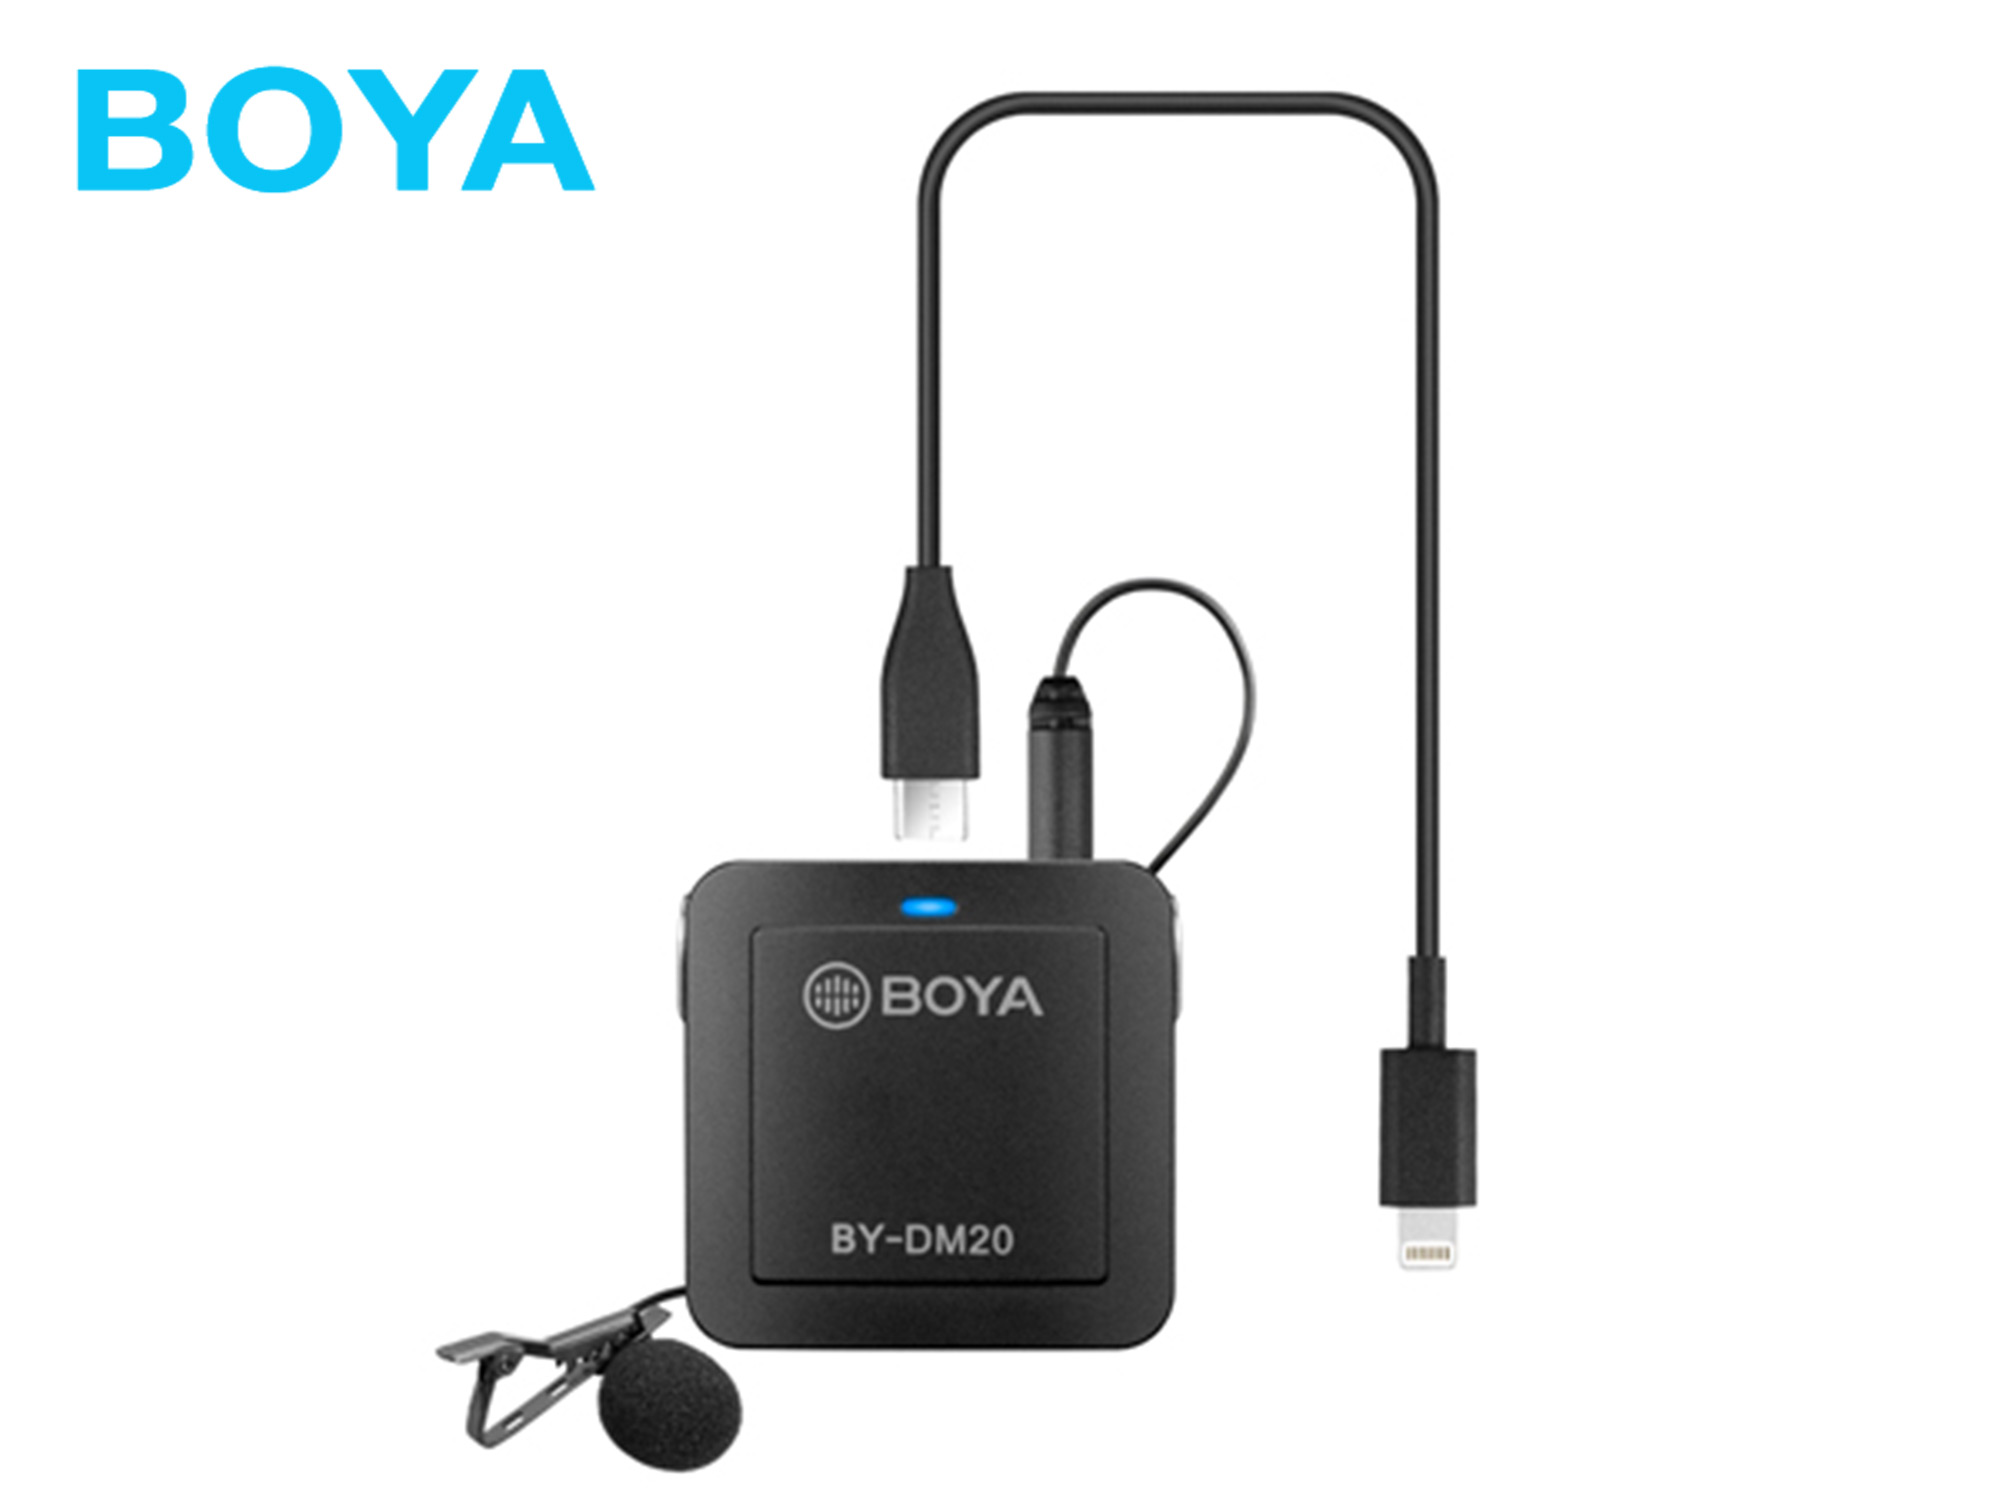 Boya BY-DM20 Dual-Channel Recording Kit